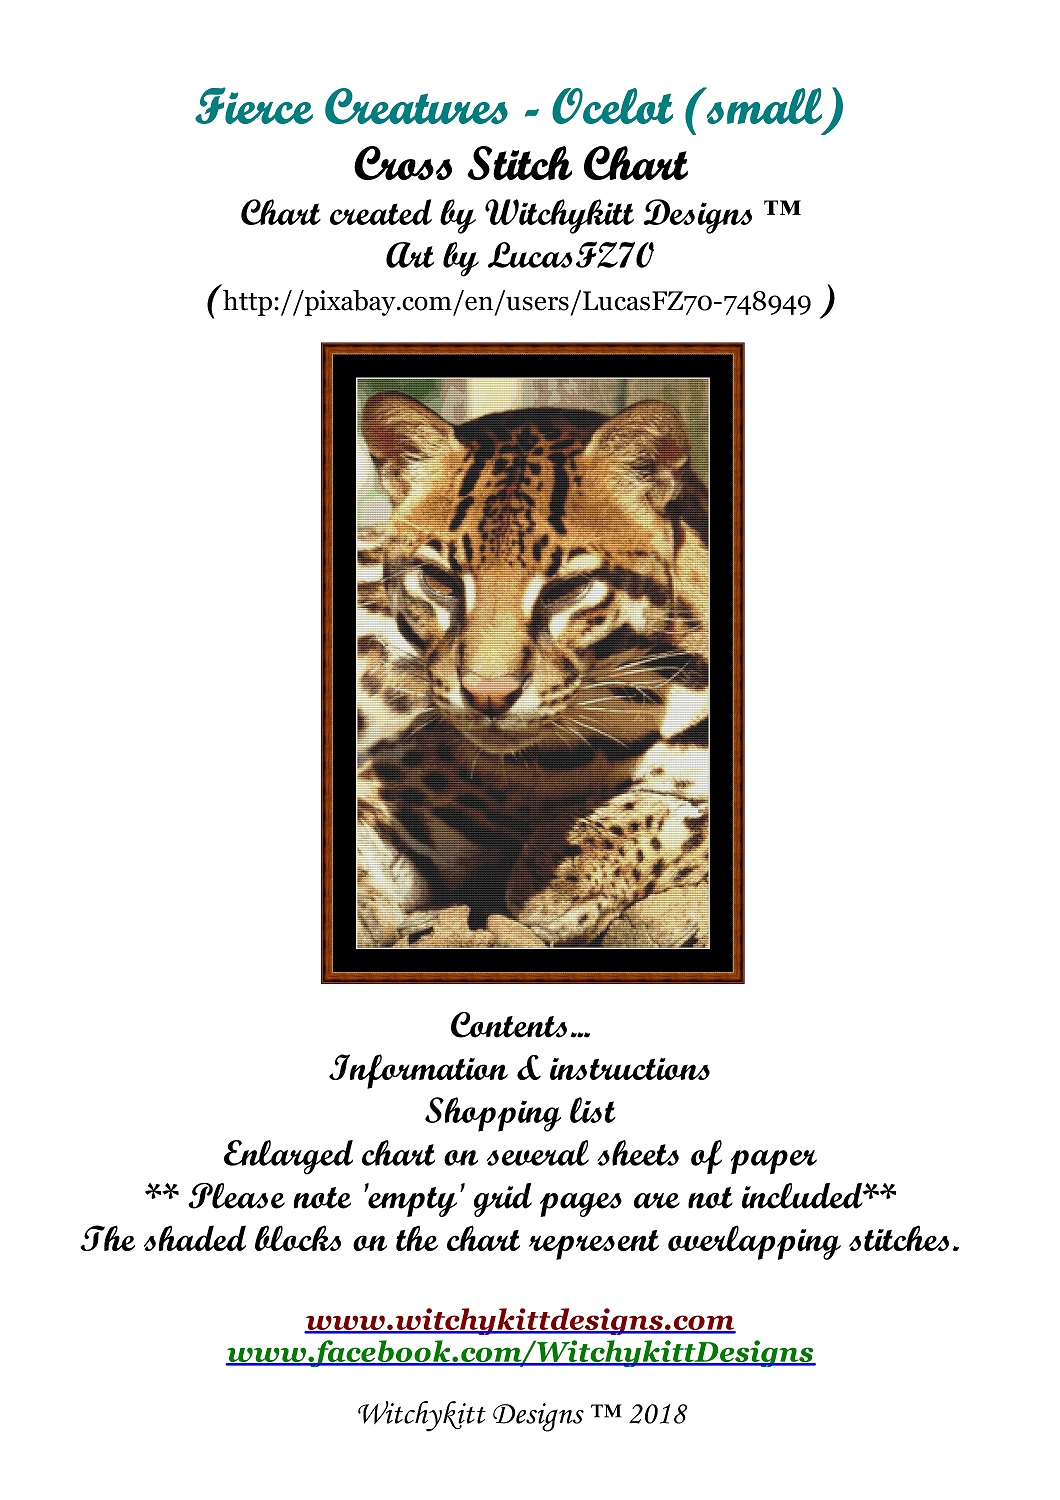 Fierce Creatures - Ocelot Cross Stitch